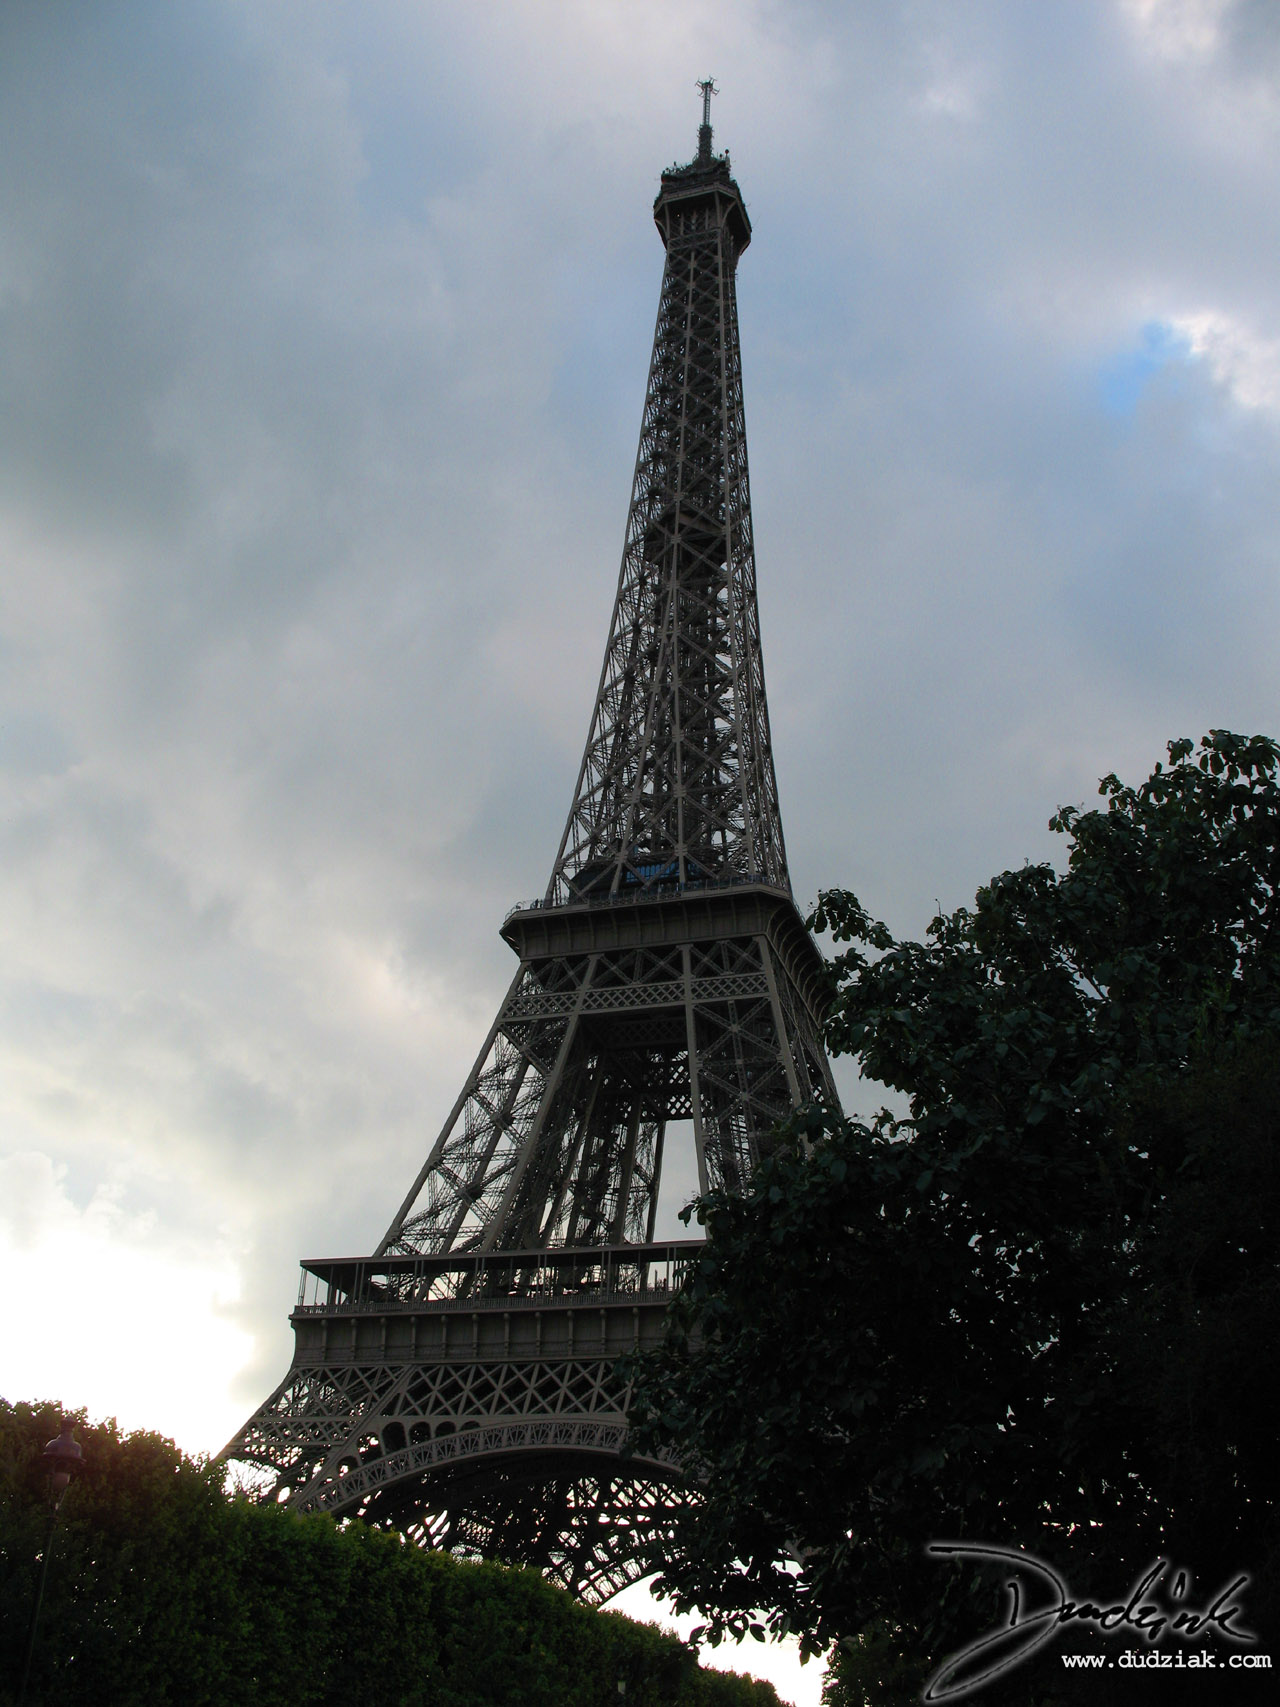 Clouds,  Cloudy,  Eiffel Tower,  Paris France